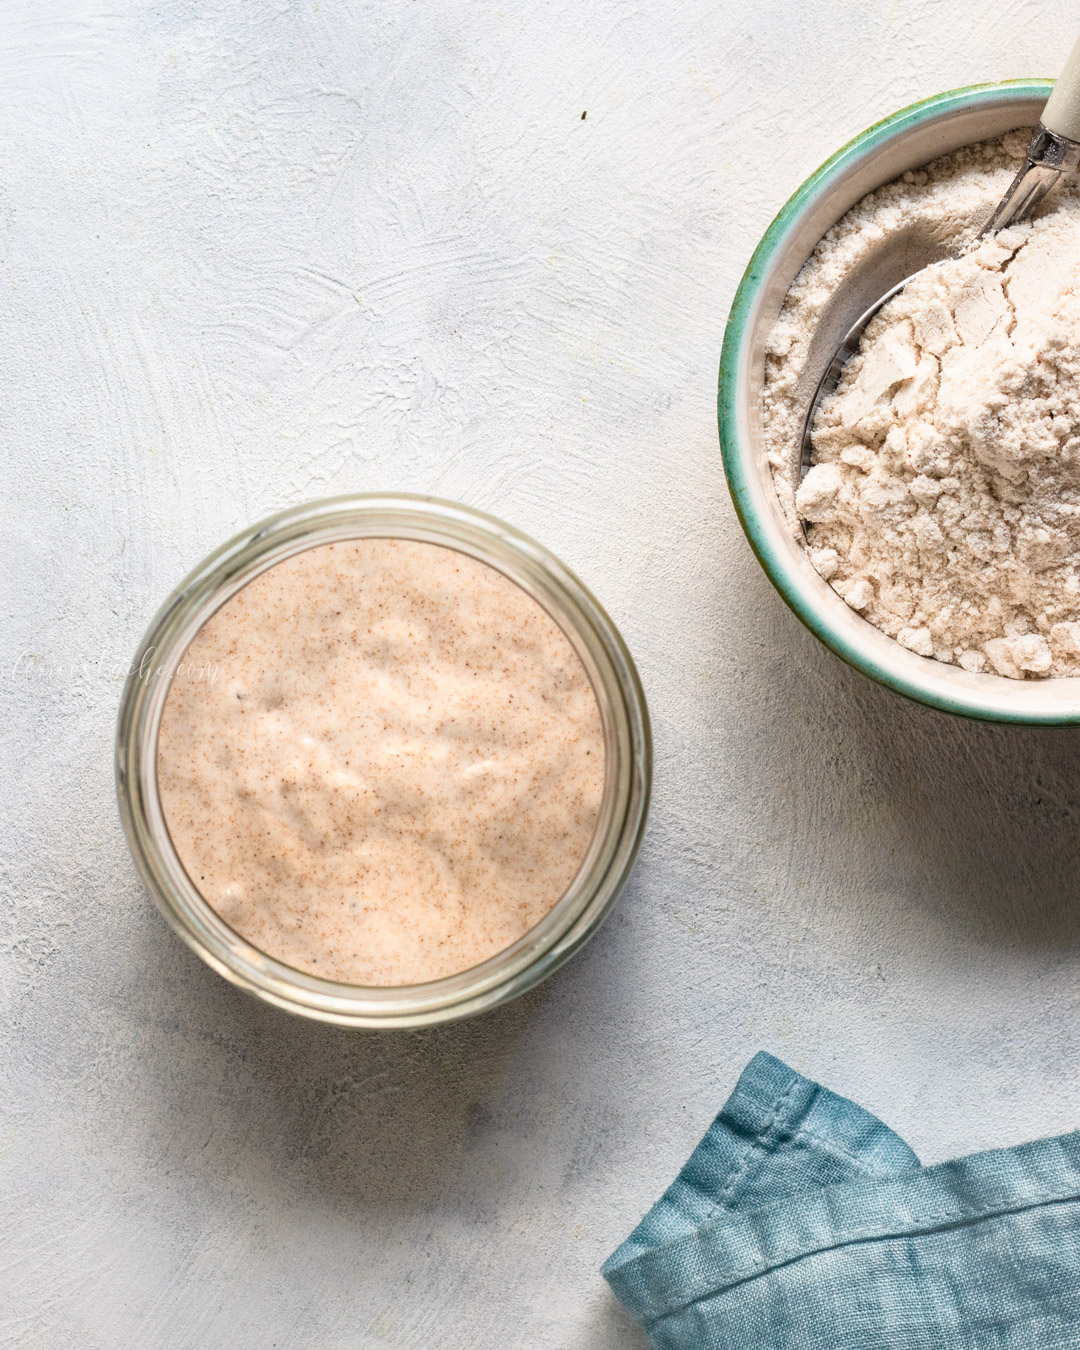 How To Grow Sourdough Starter from Scratch